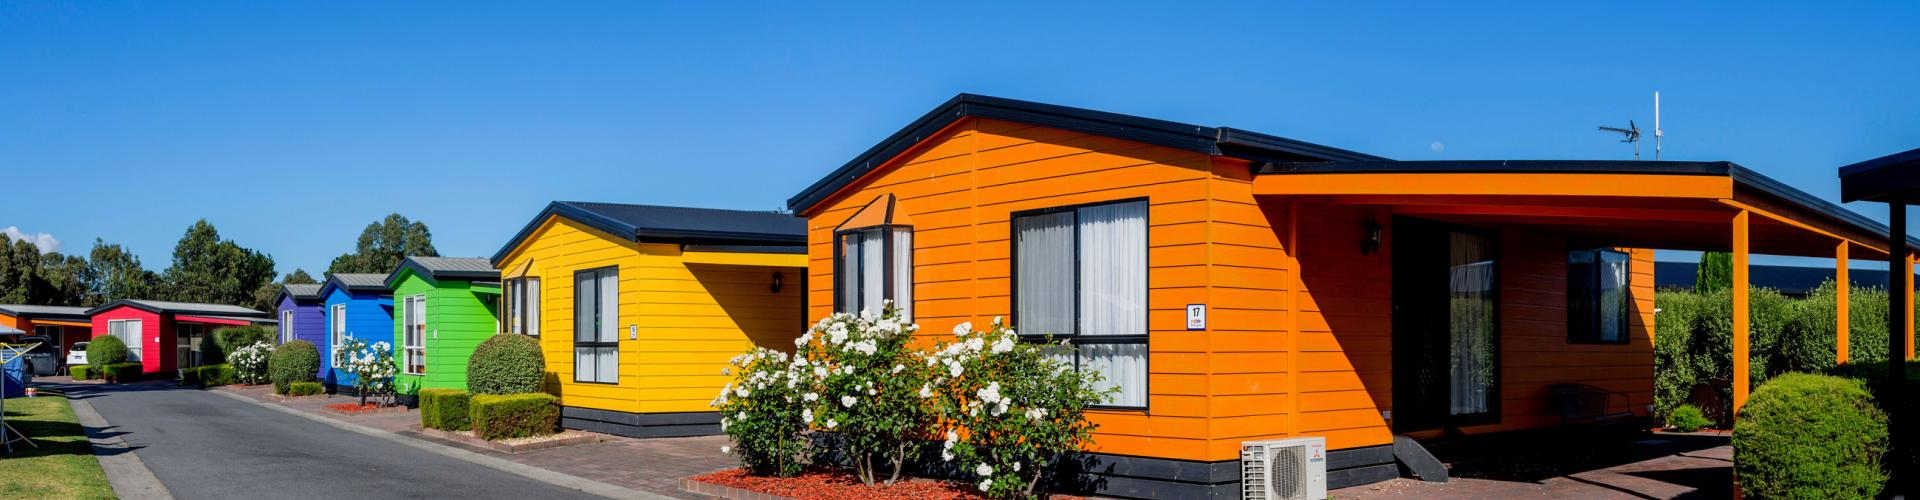 BIG4 Traralgon Park Lane Holiday Park - Cabin Accommodation